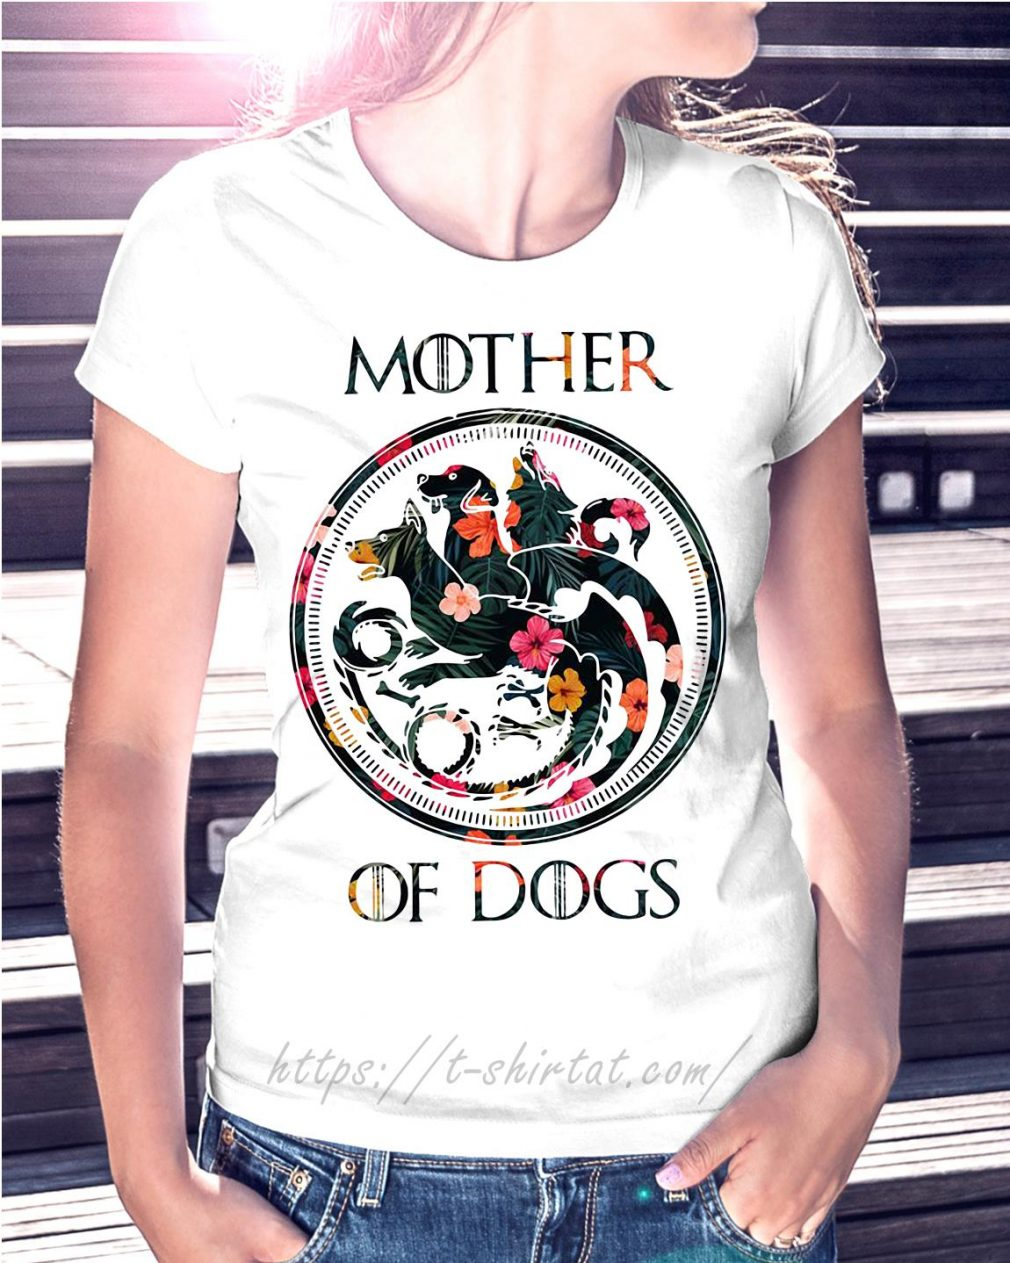 Game of Thrones mother of dogs green flower